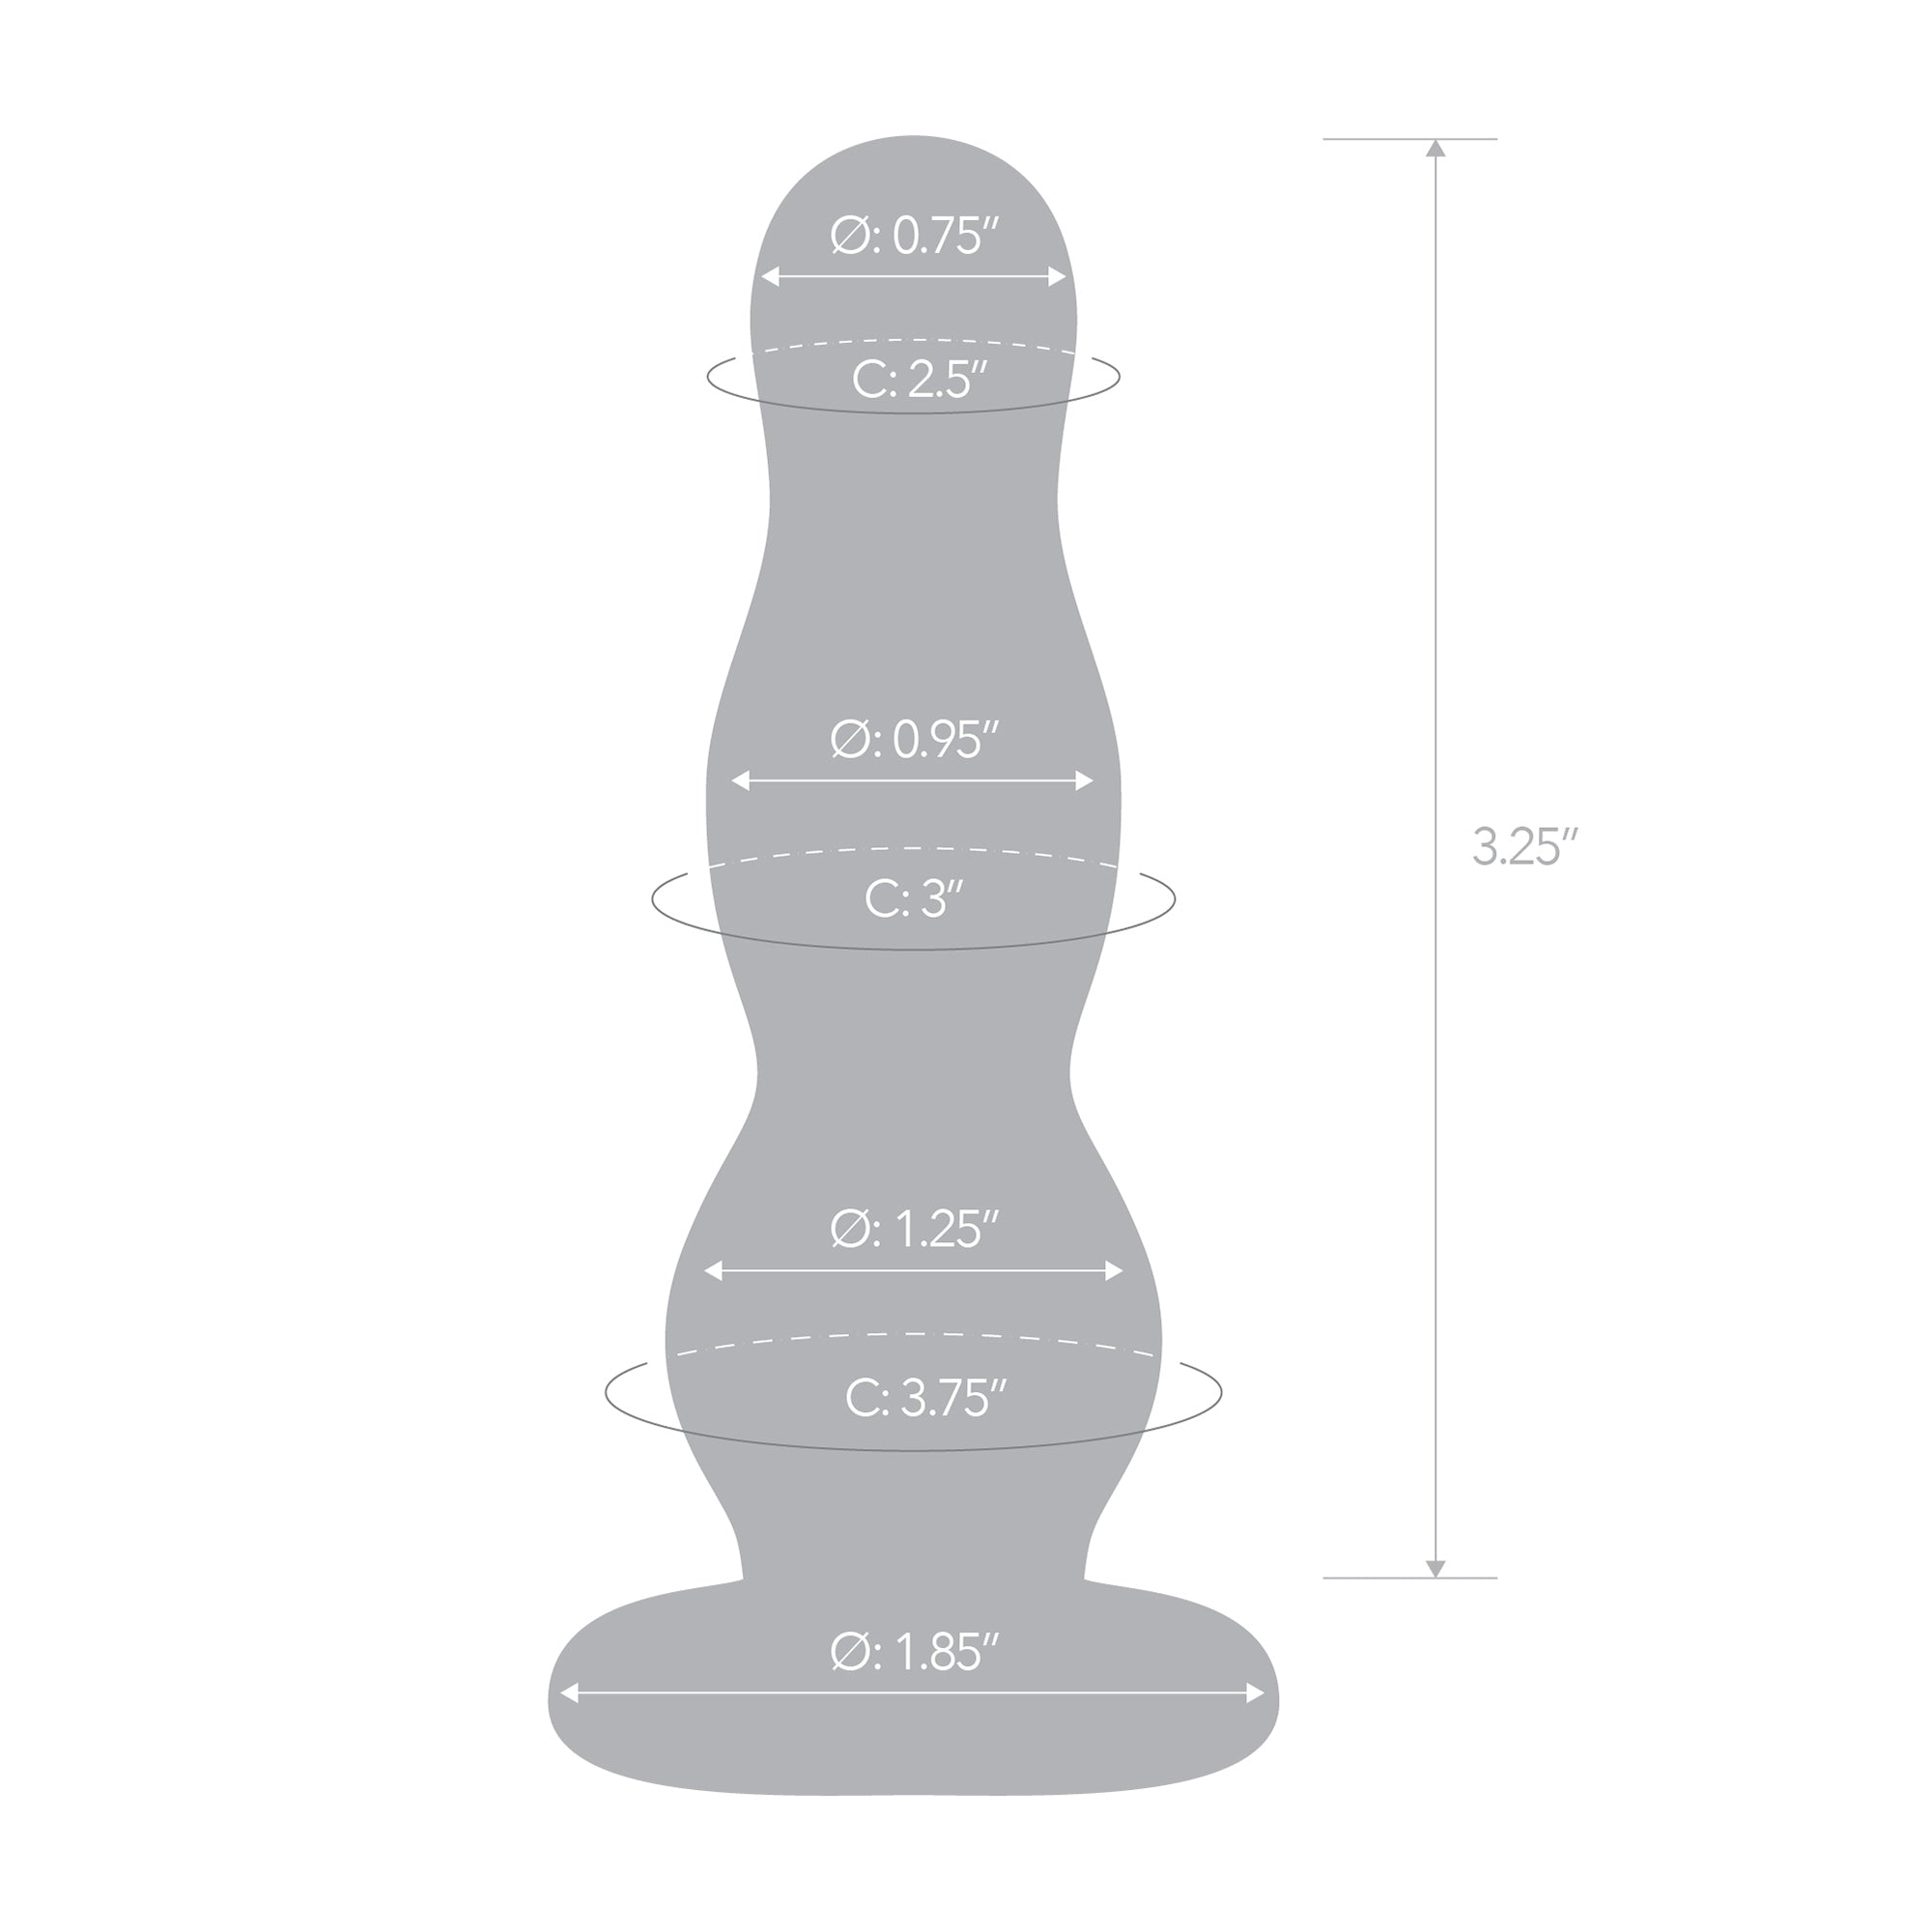 Specifications of the Gläs 4 inch Glass Butt Plug